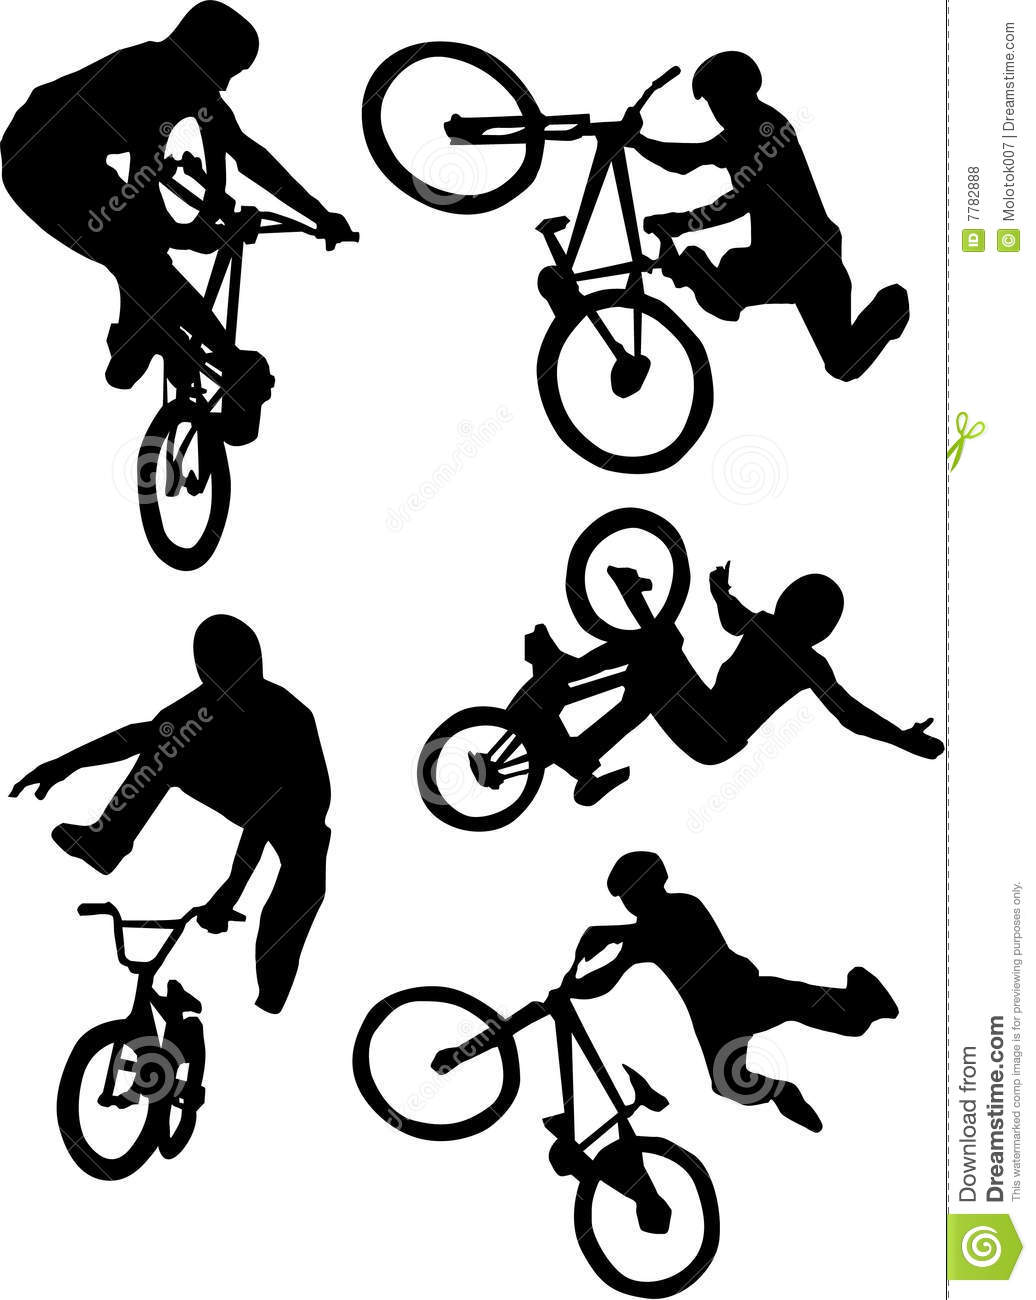 Silhouette of bmx riders on a white background.